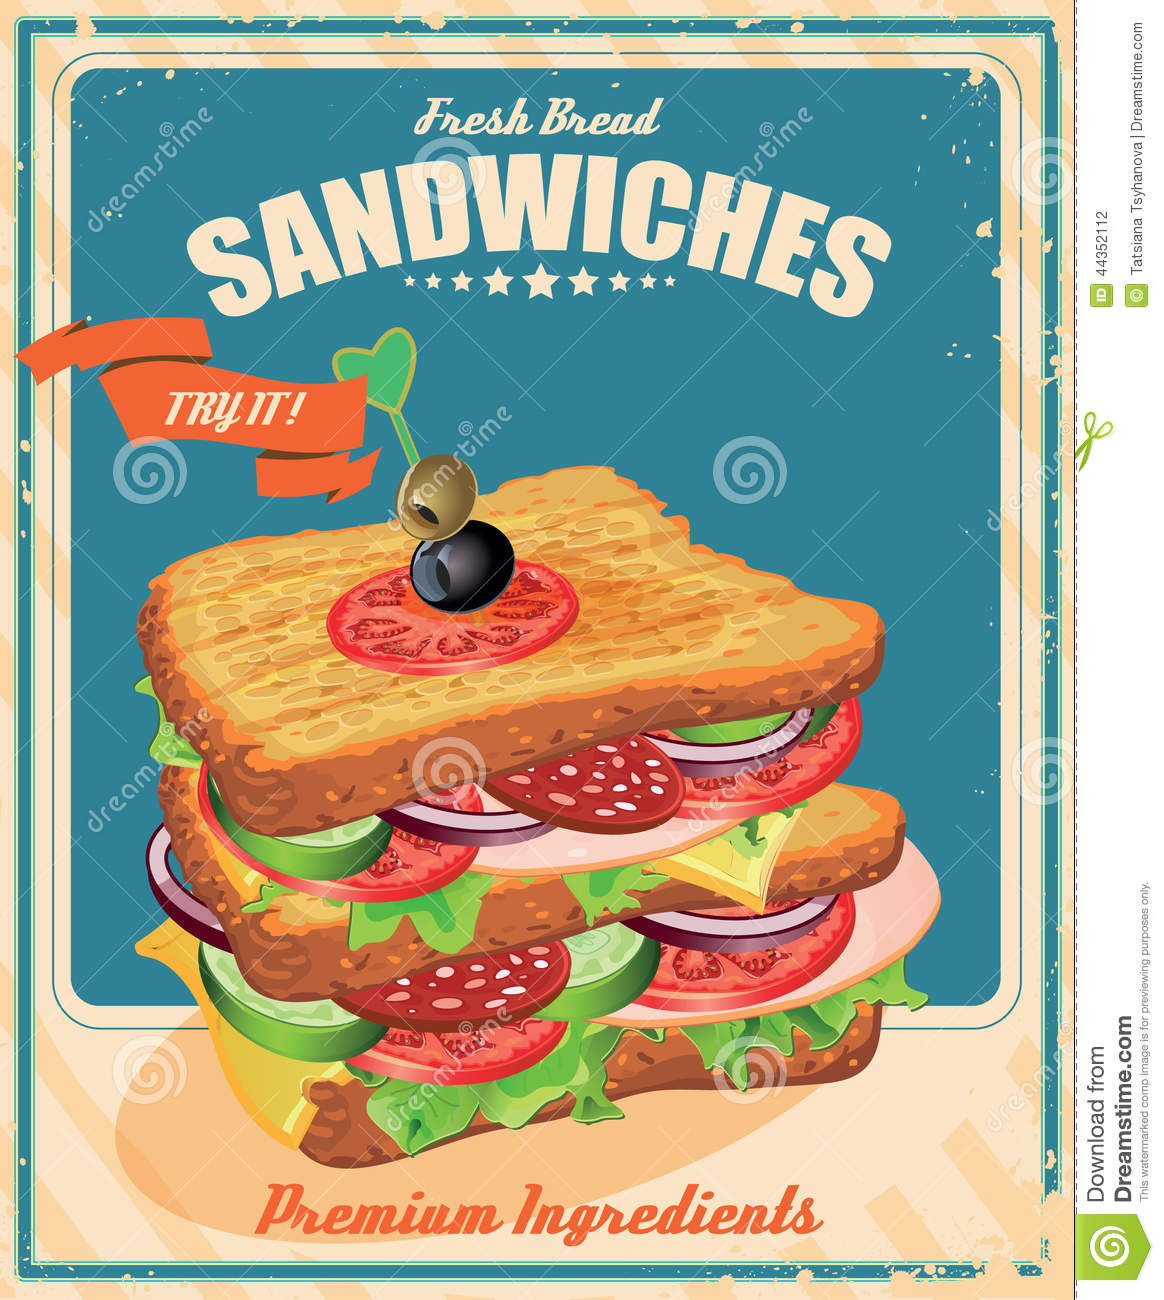 4 Scoops Of Jenis Ice Cream also Subway Pizza Nutritional Information Cad further Pavone Sliced Br Turkey Pepperoni 3oz in addition Cooked Ham 24 Oz additionally 111037 Hillshire Farm Deli Select Pastrami Ultra Thin 7 Oz. on turkey lunch meat nutrition information